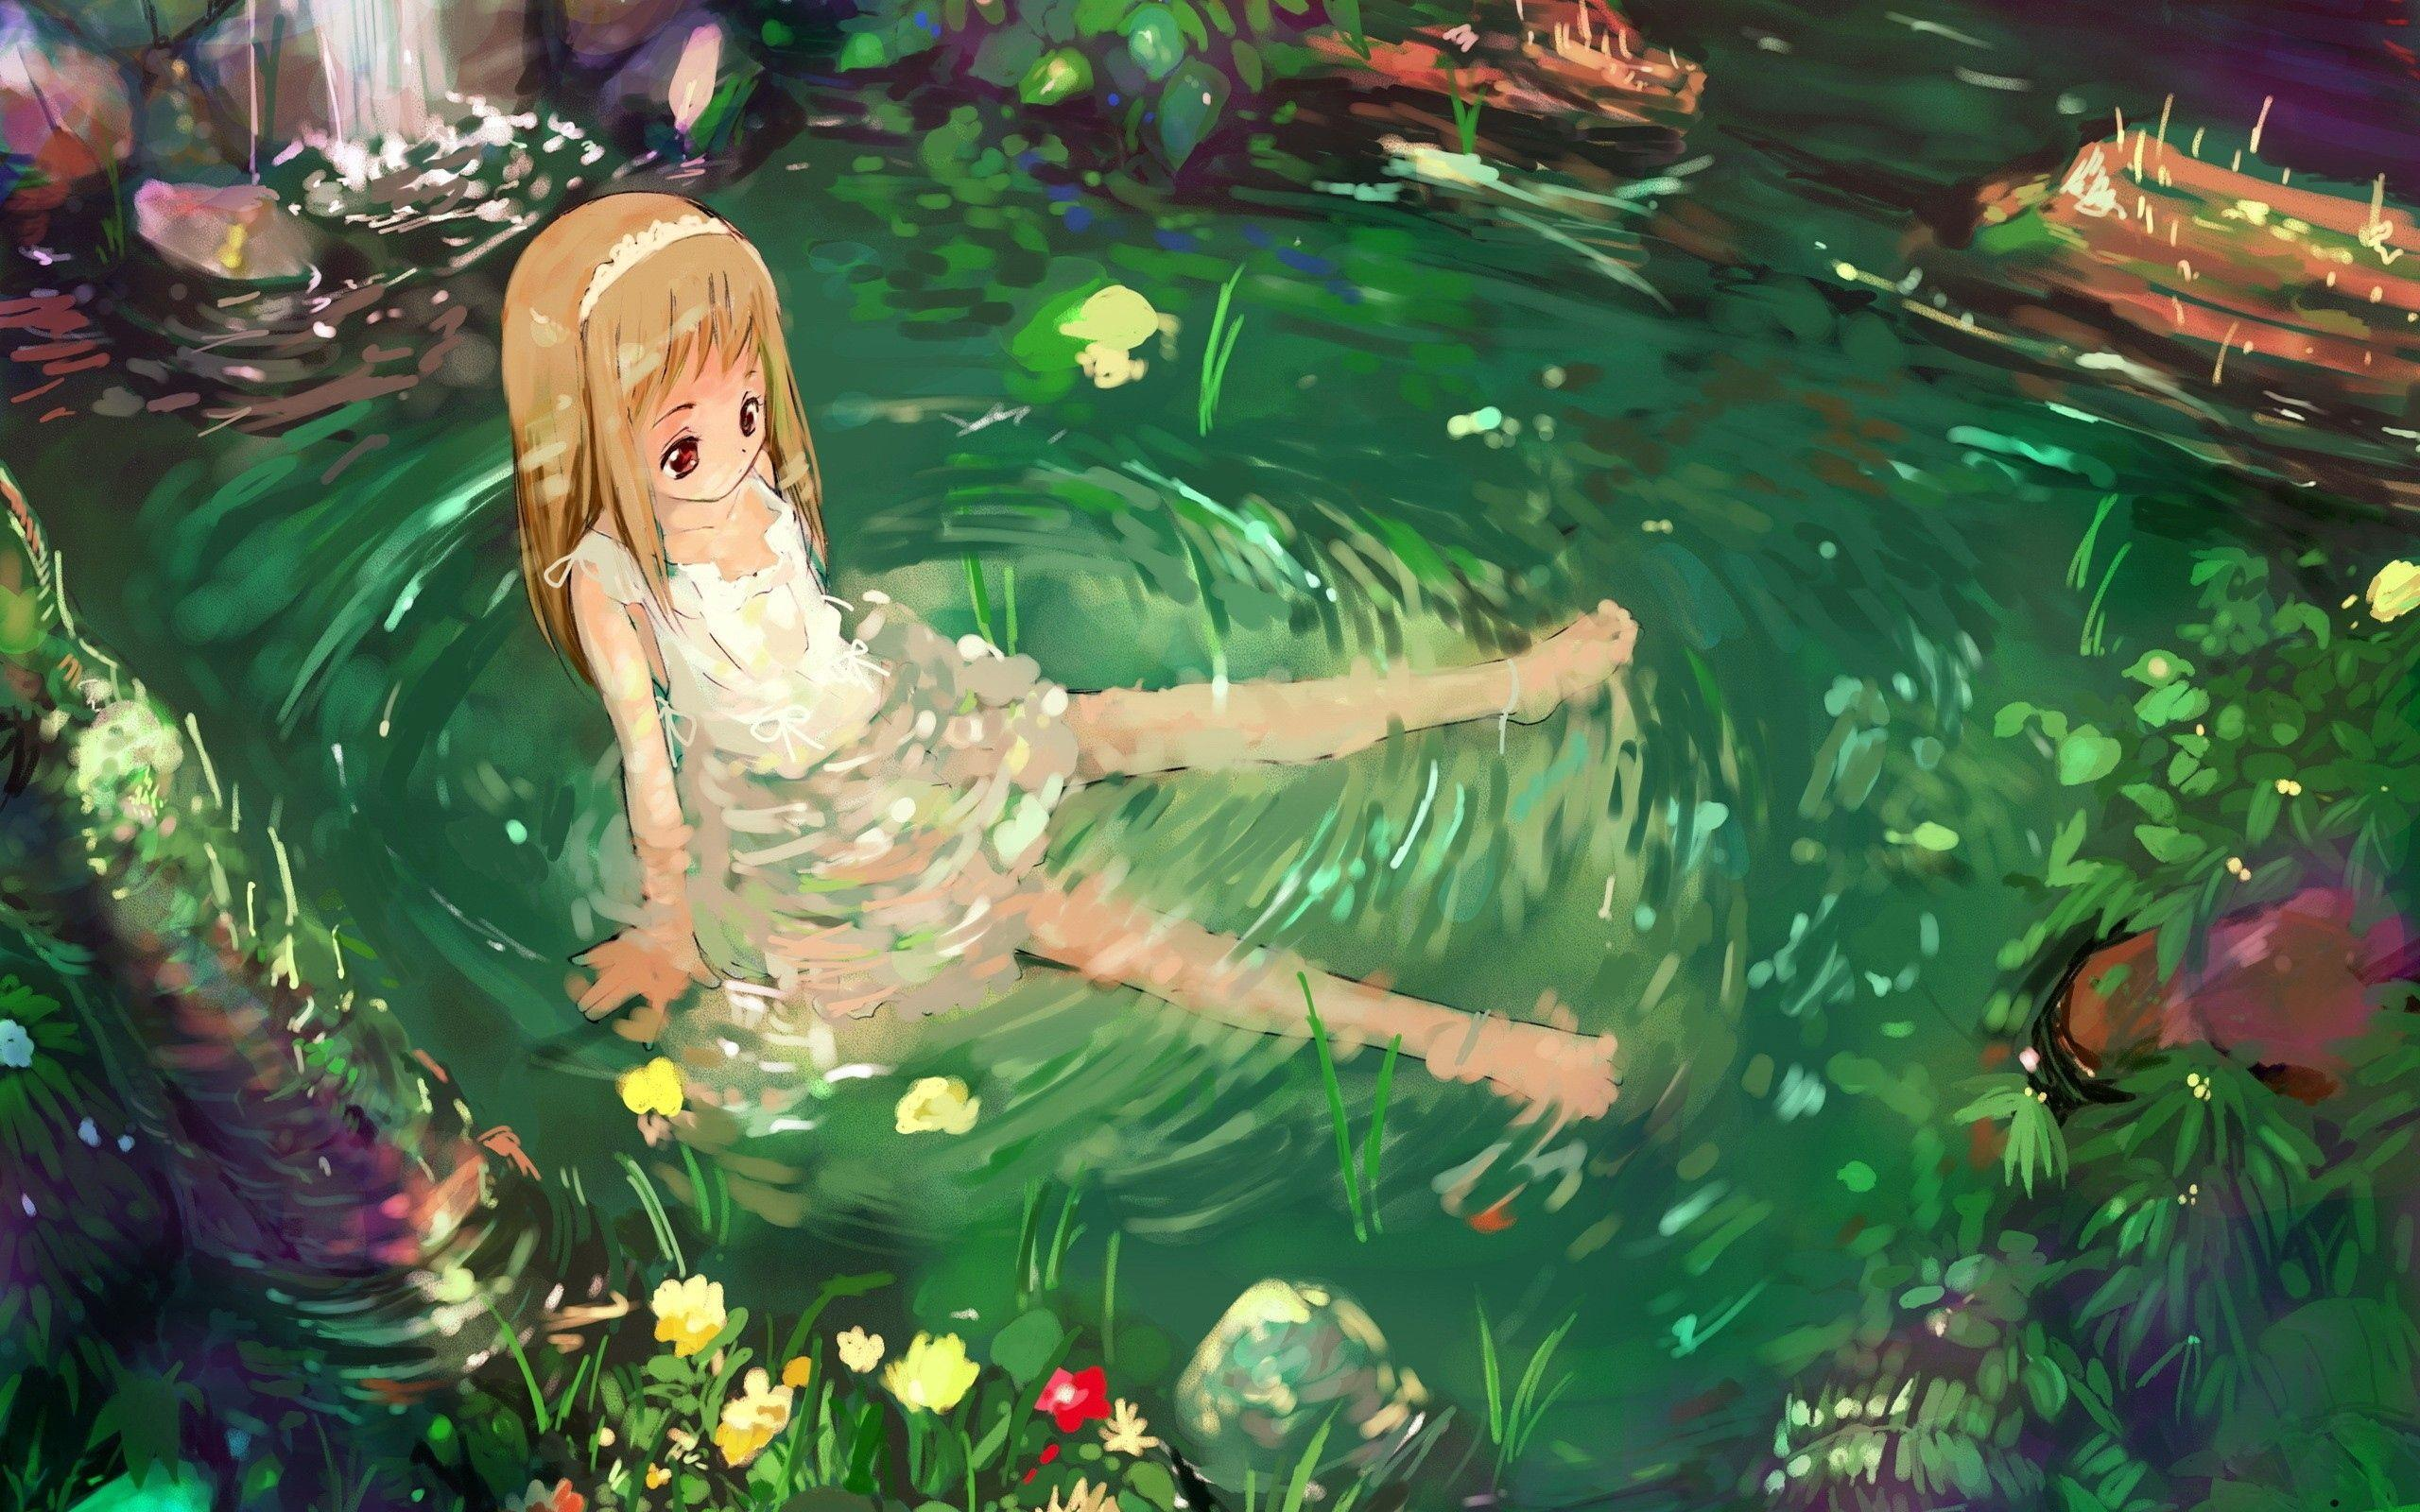 Download wallpapers 2560x1600 anime, girl, nature, water, sadness hd